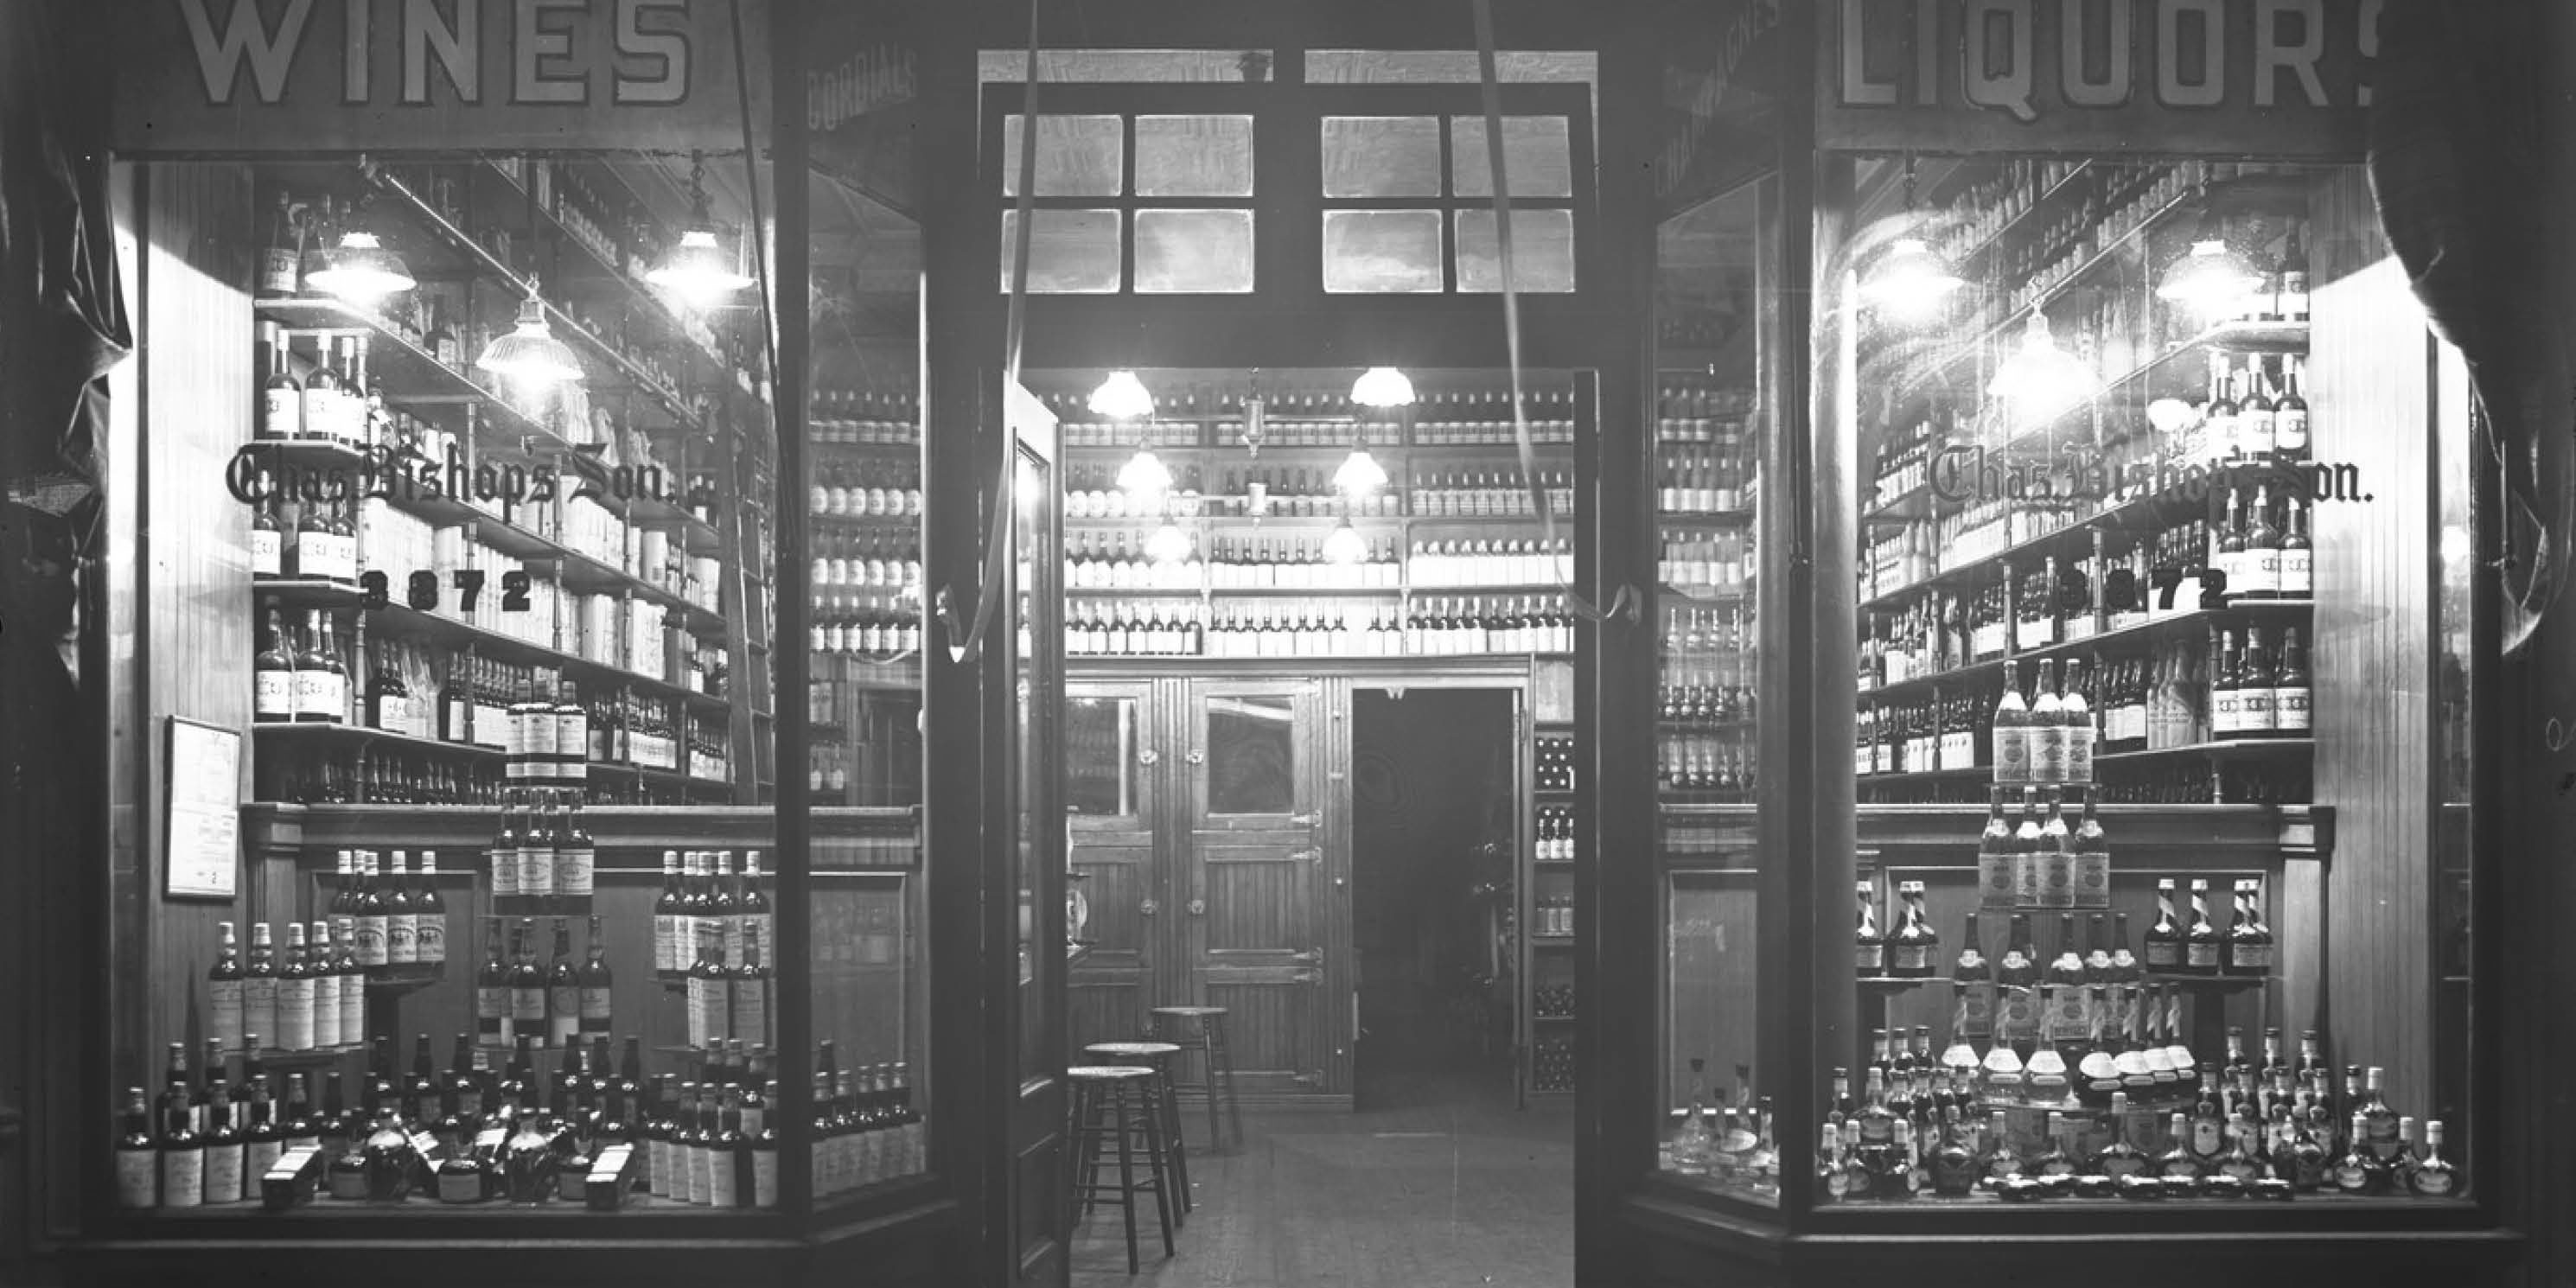 archival photo of a wine and liquor store's front windows